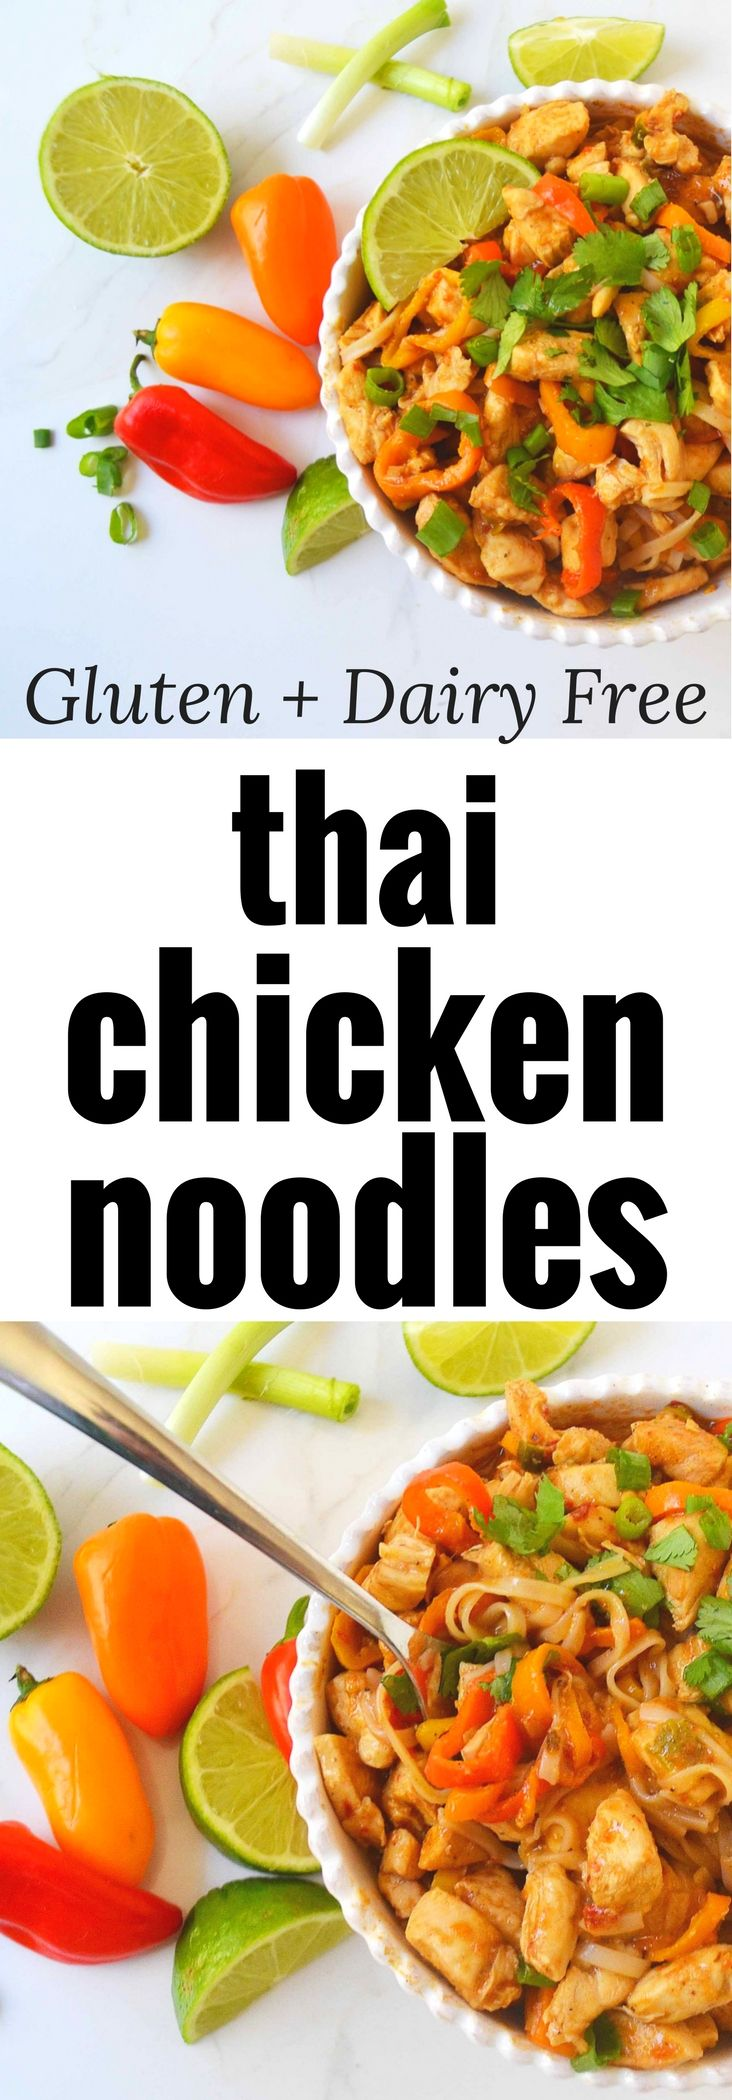 Thai Chicken Noodles are a healthy dinner made in less than 30 minutes. Gluten-free and Dairy-Free dinner is full of flavor. A family favorite!